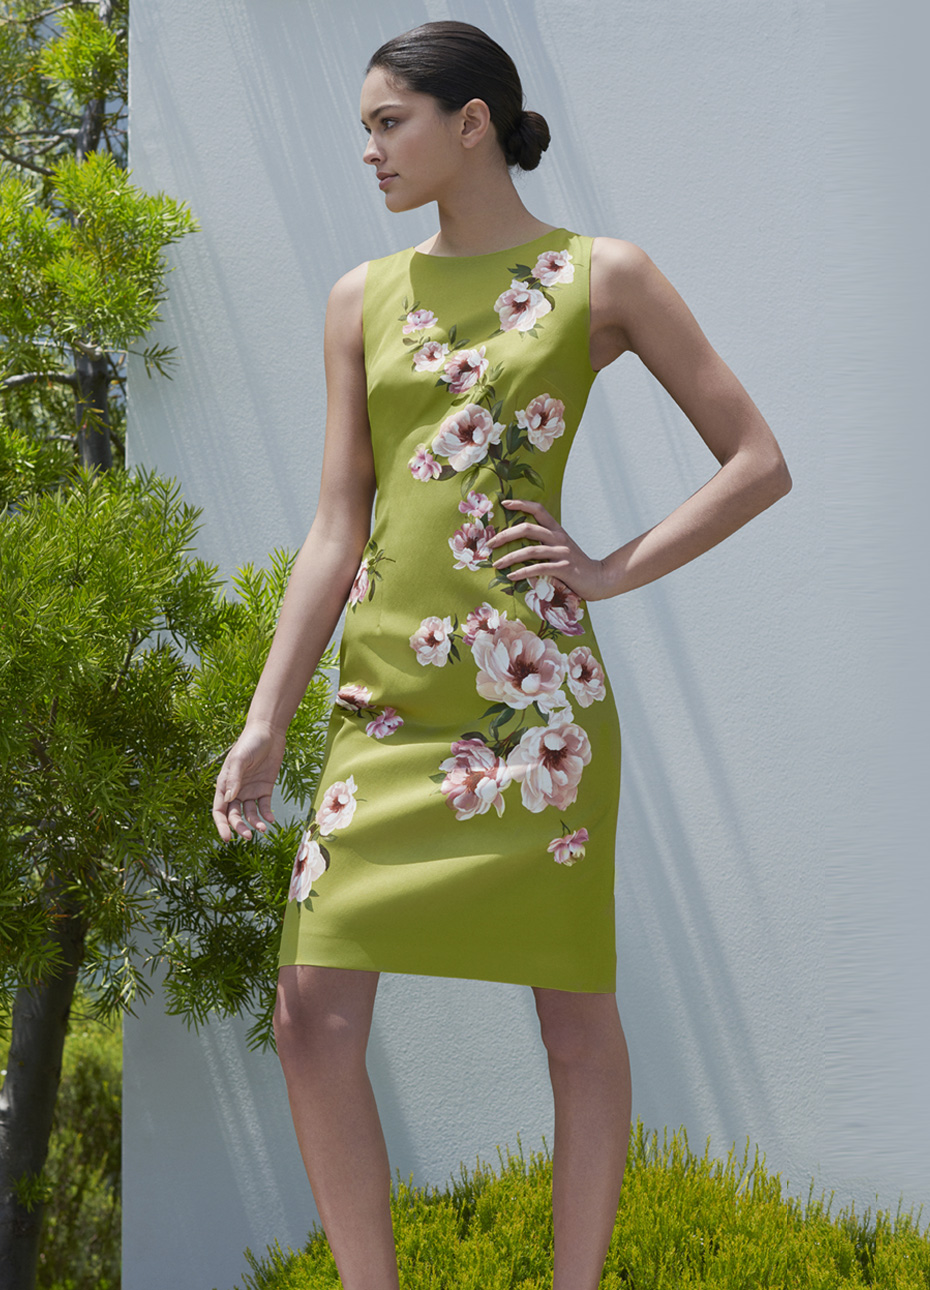 Green shift dress with a pink floral pattern worn with nude court shoes by Hobbs.